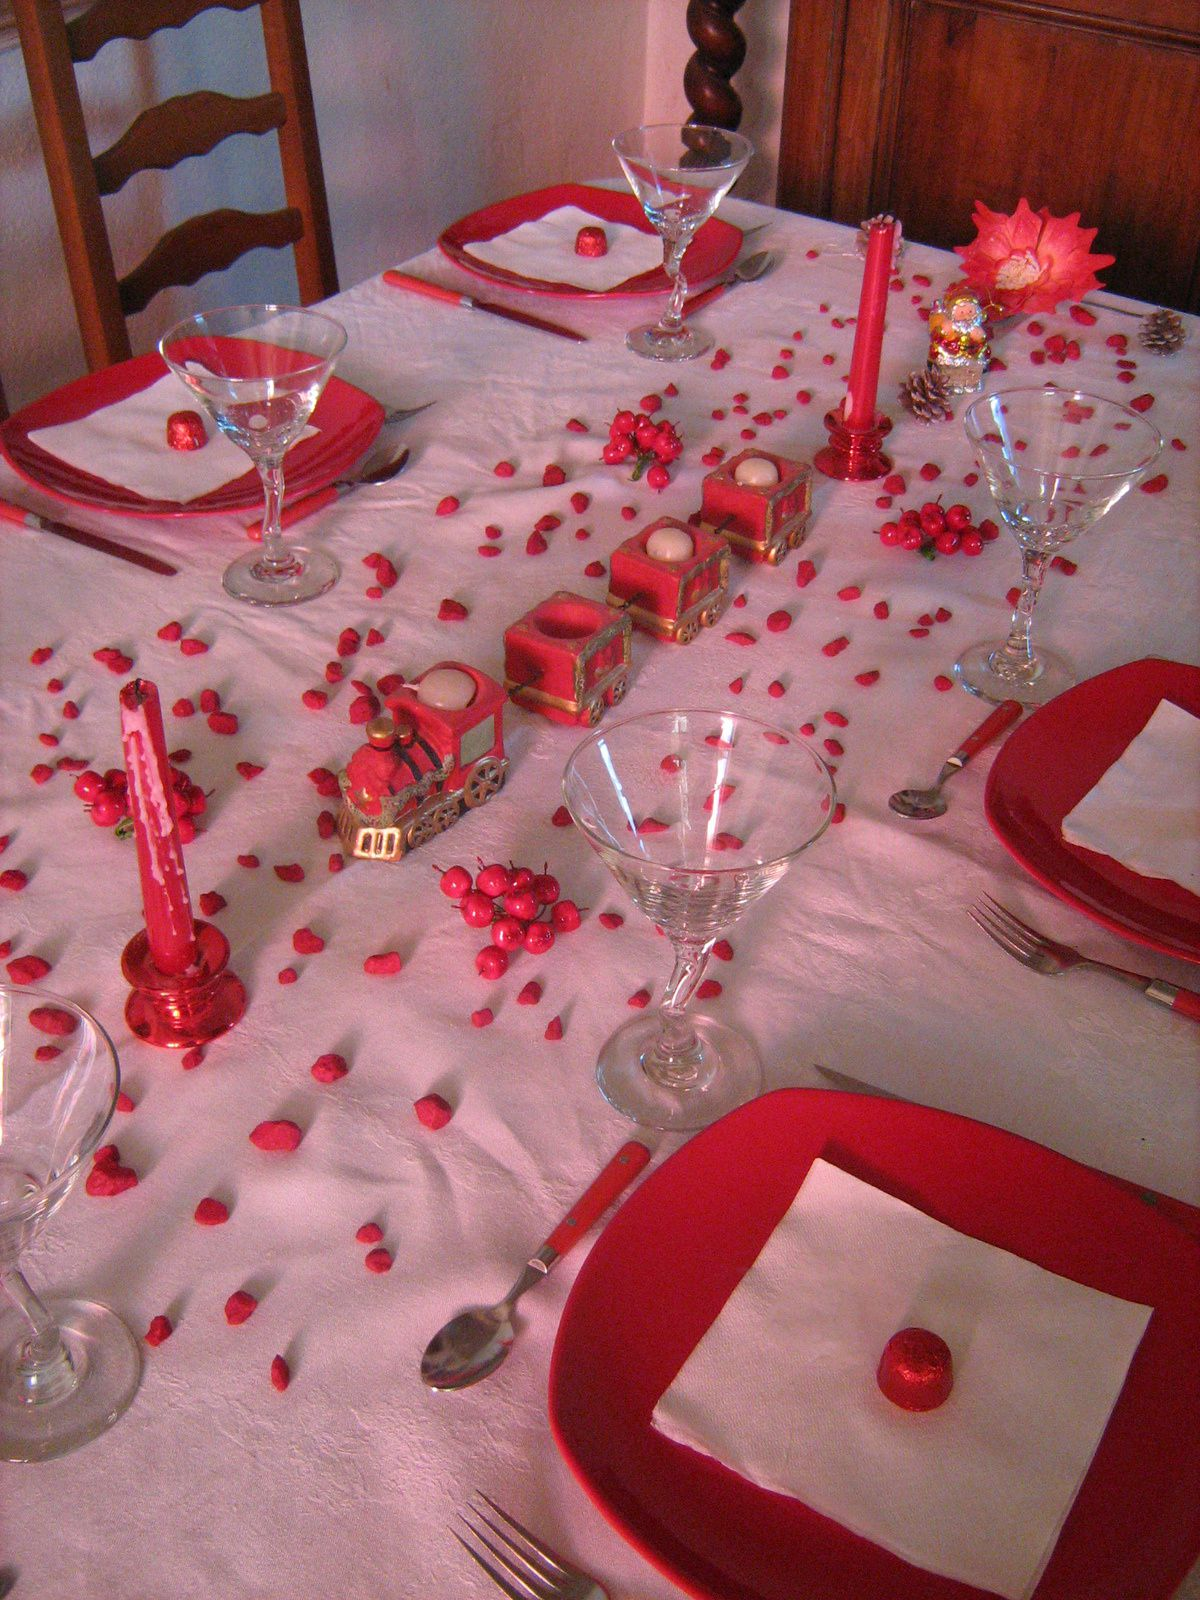 #AC1F30 TABLE DE NOEL EN ROUGE ET BLANC 1 Table Et Déco D'Estelle 5505 decorations de noel rouge et blanc 1200x1600 px @ aertt.com